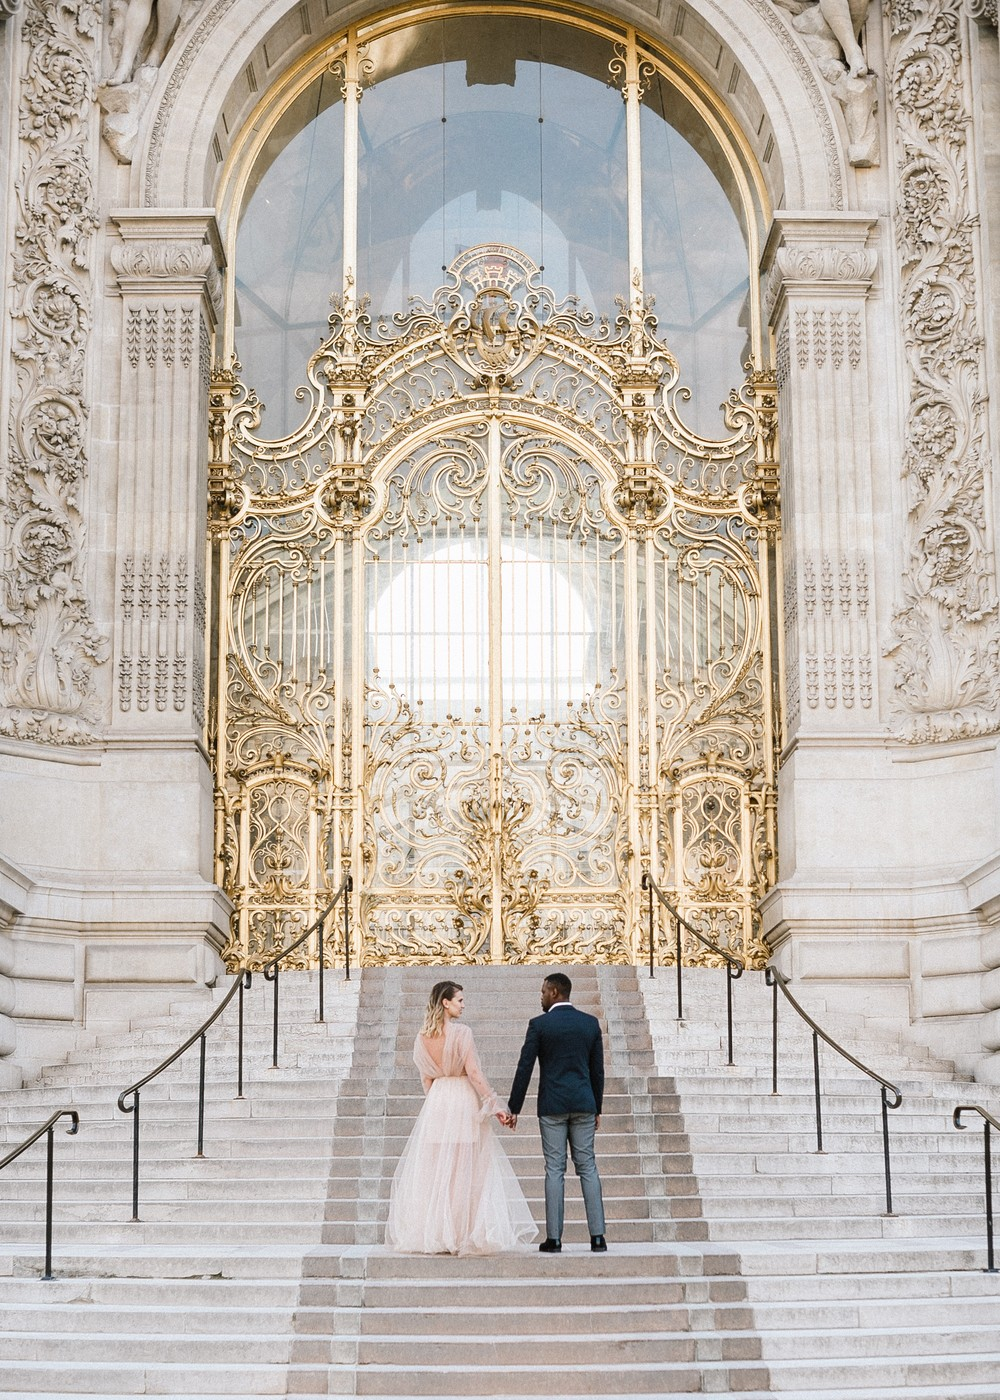 Sophie & Rolly, Paris, Wedding for two